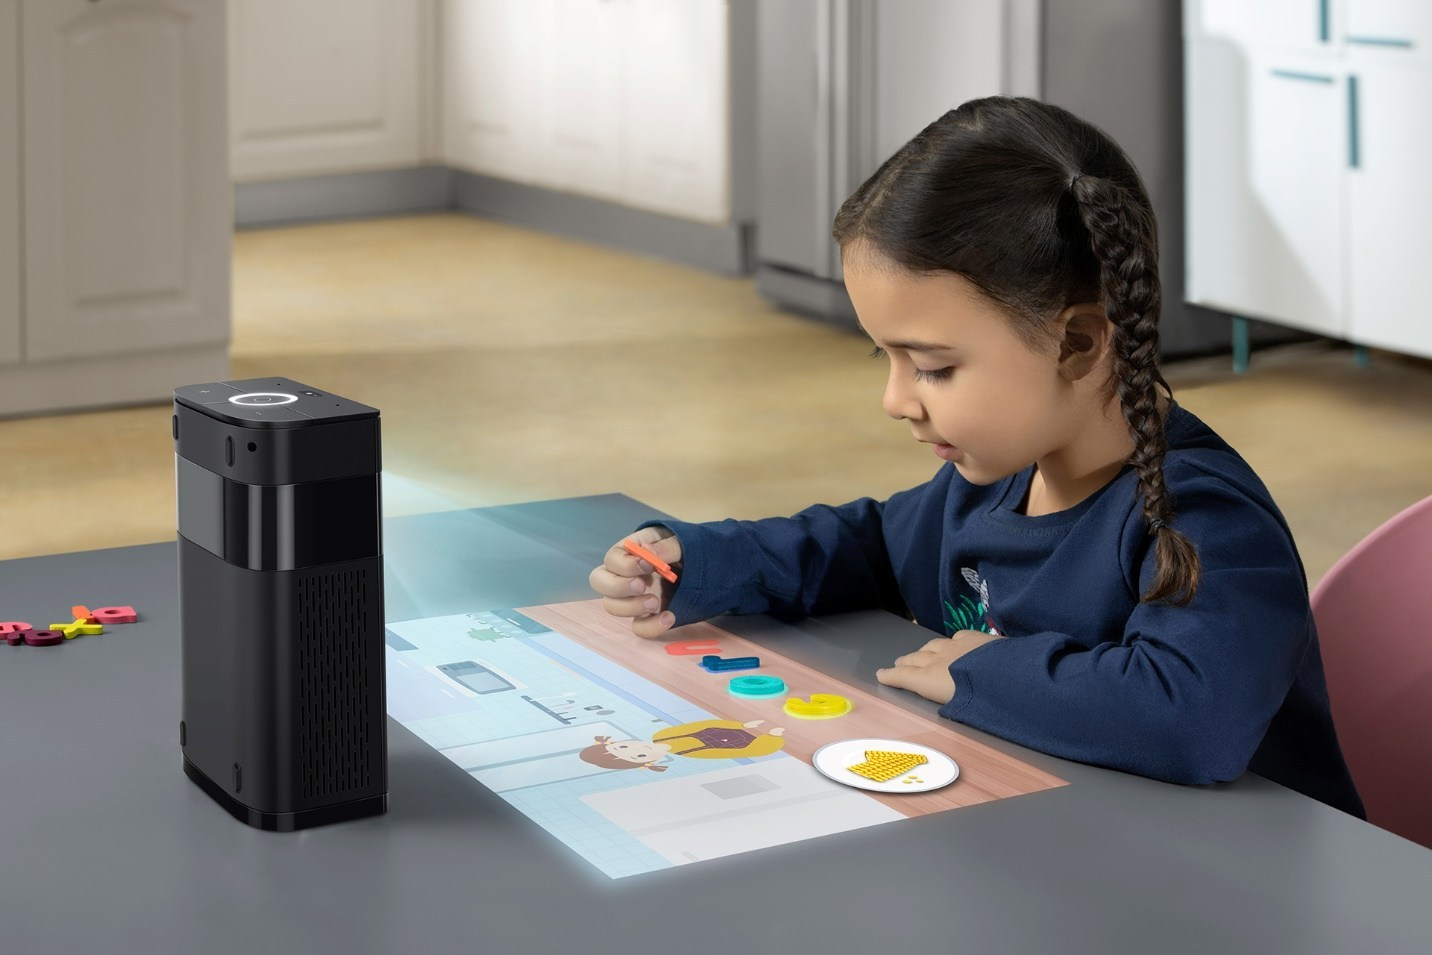 Be equipped this year - here are portable and pocket-sized projectors